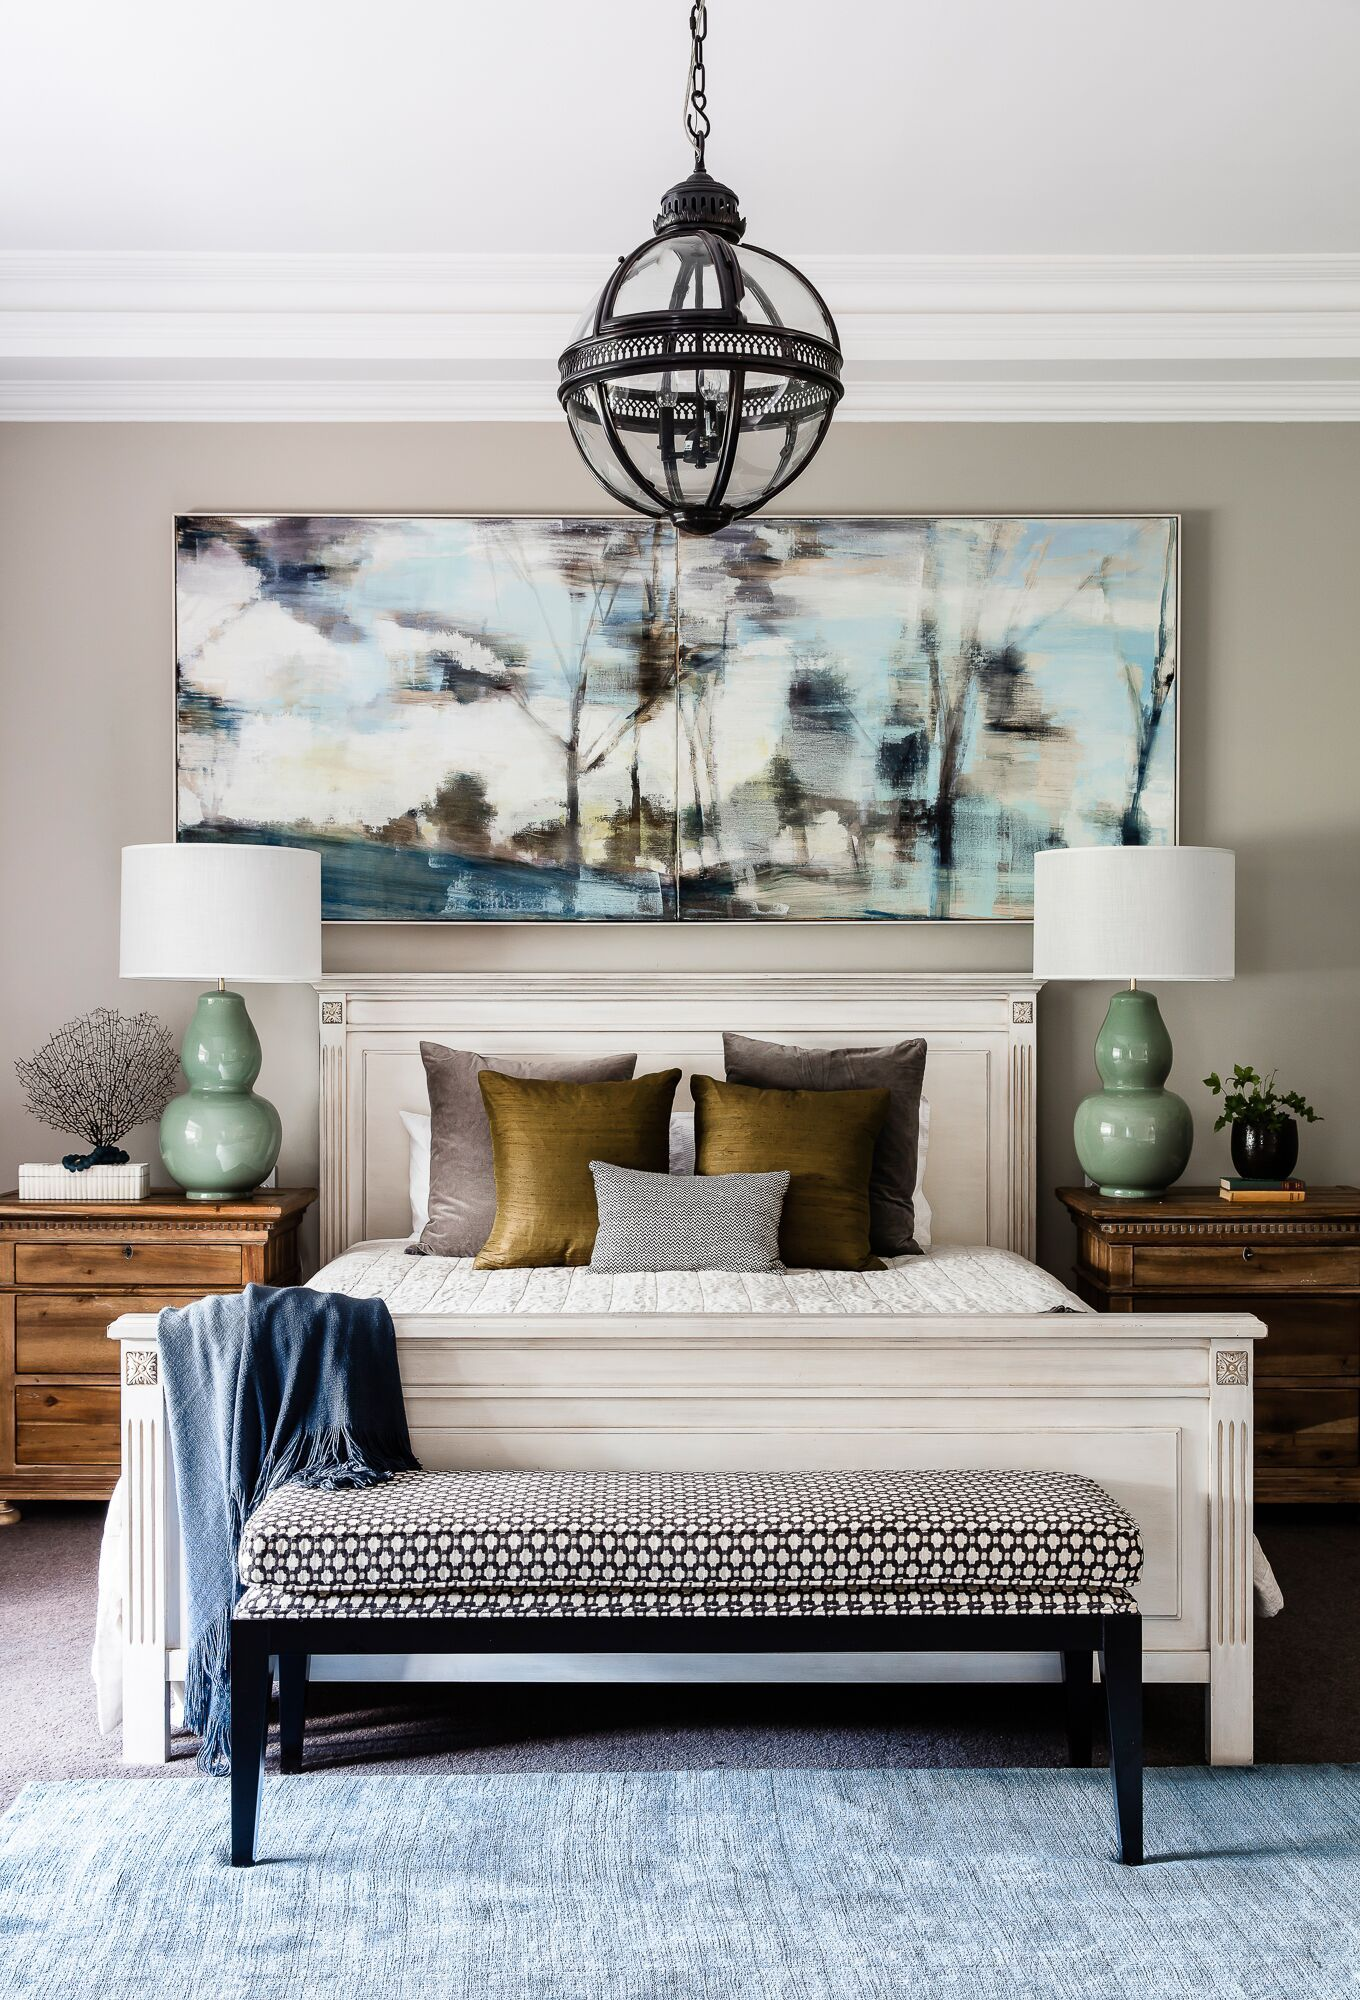 Bedrooms Pin by Beecraft on Bedrooms